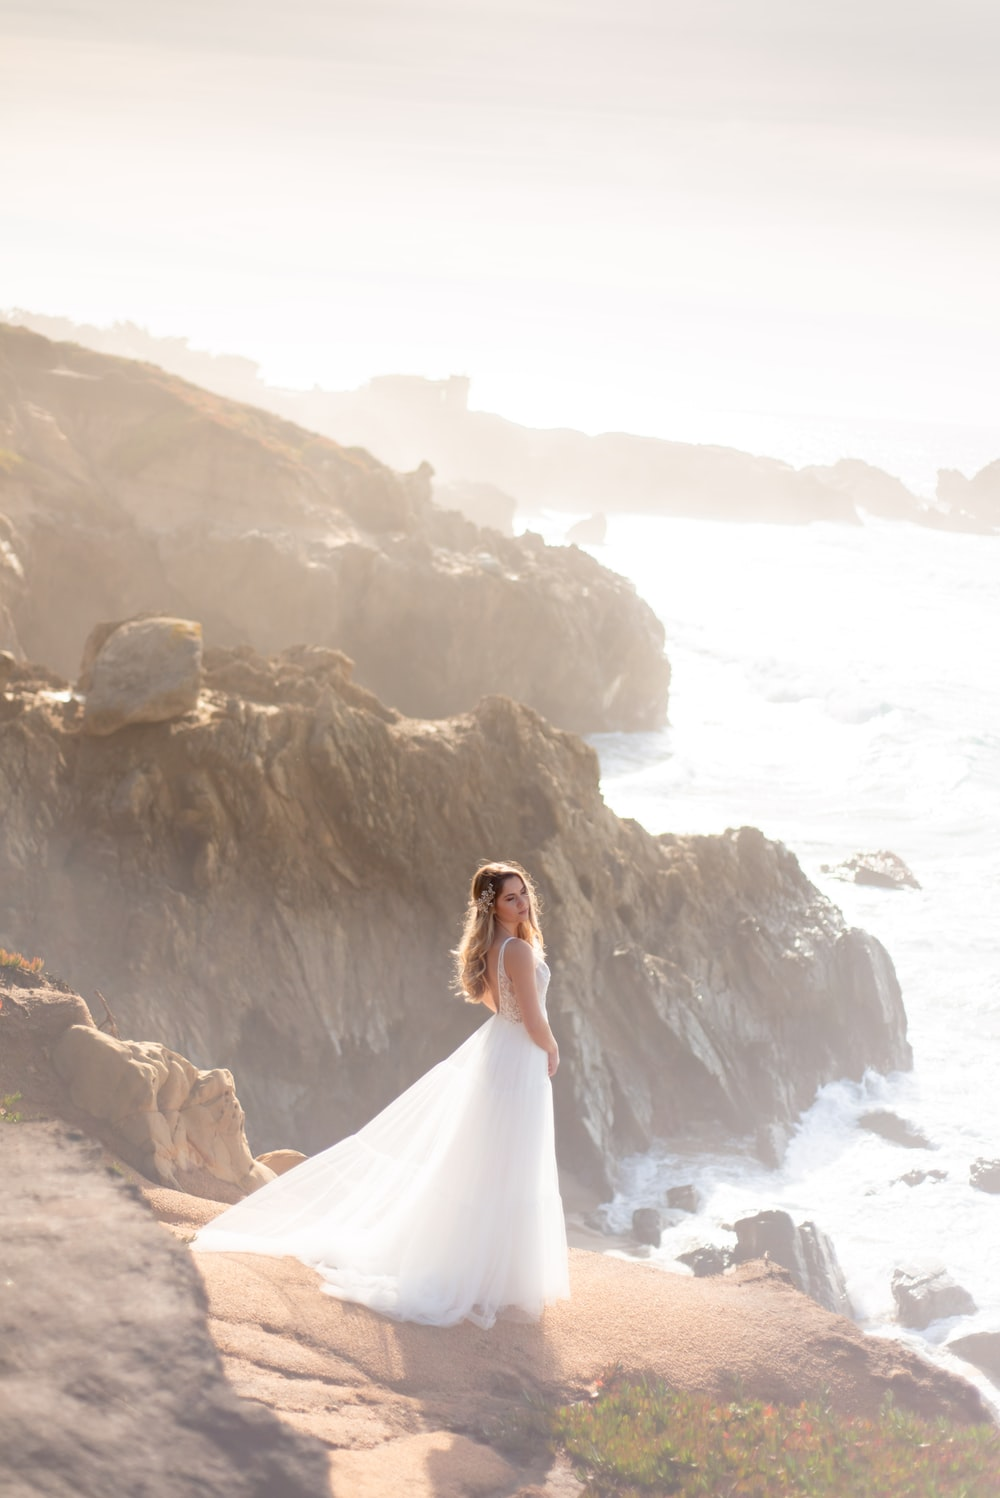 woman in white wedding dress standing on rock formation near body of water during daytime